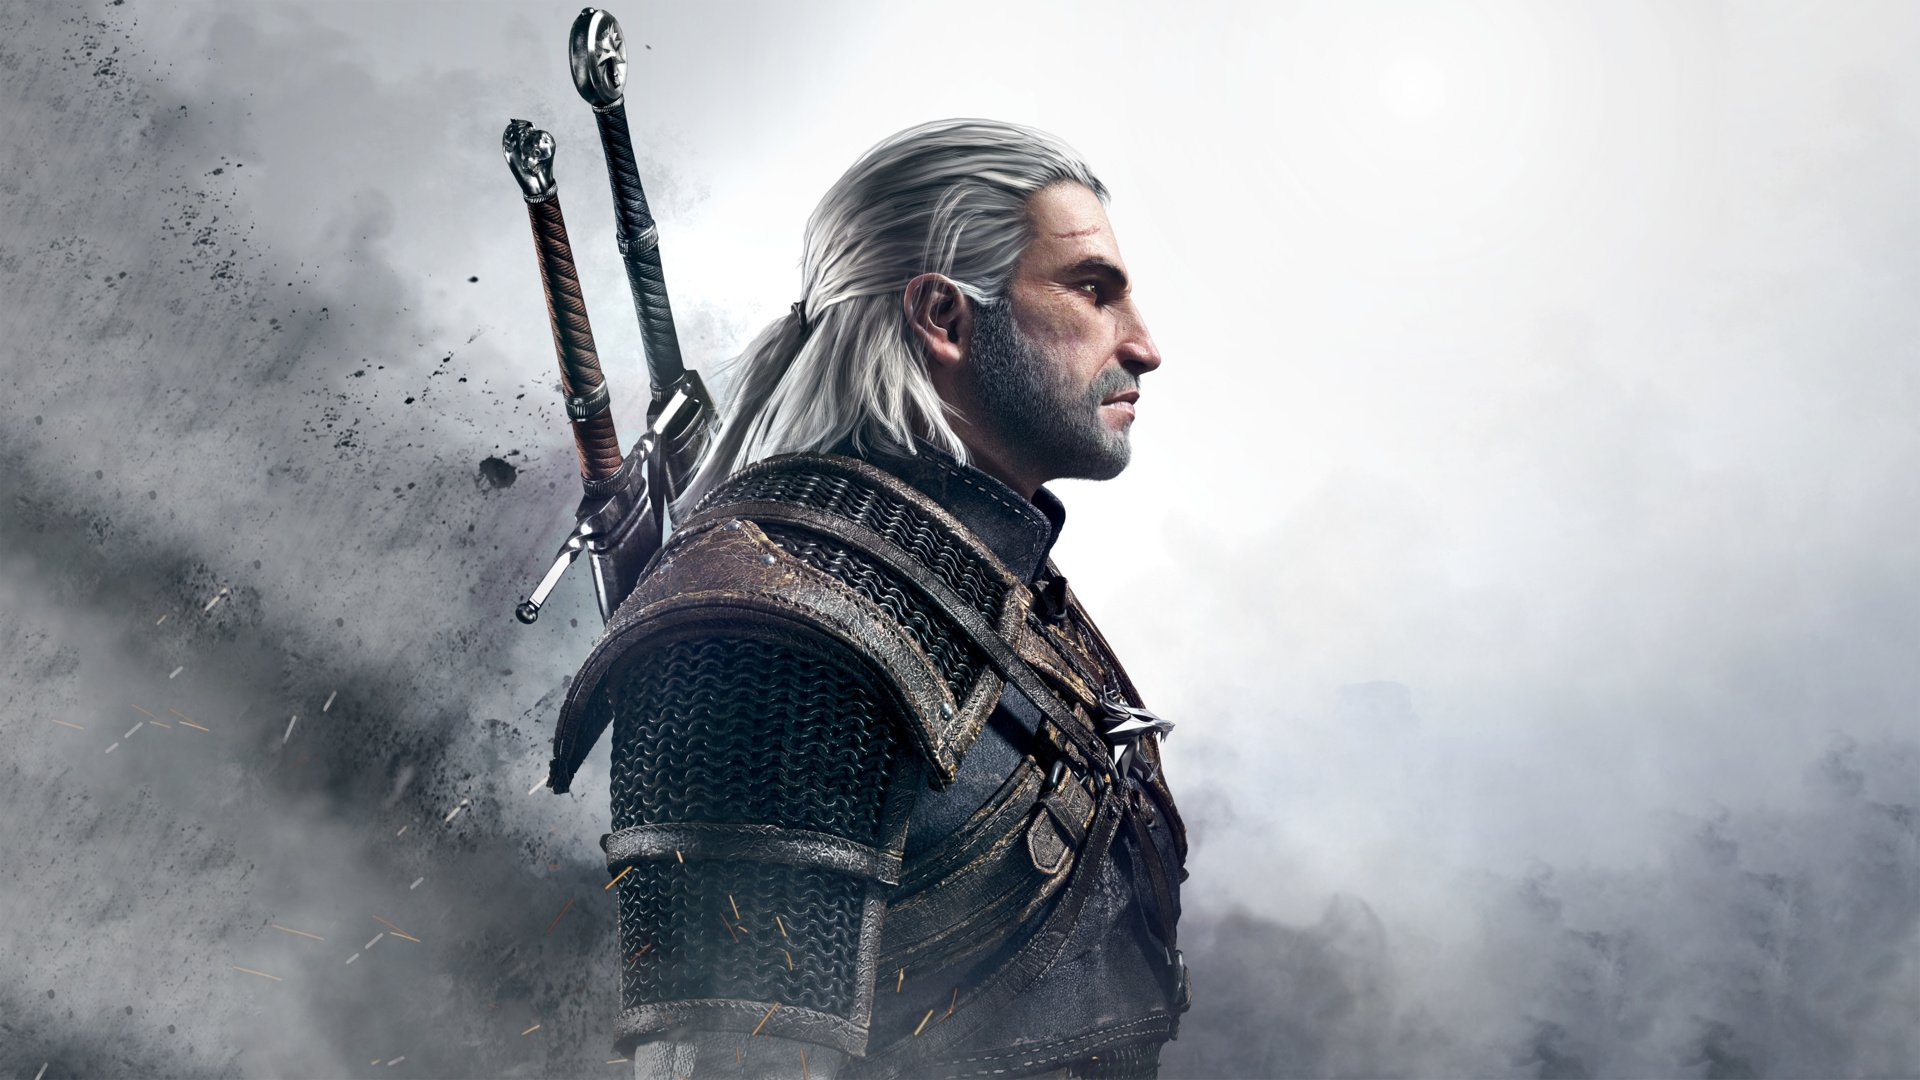 The games that helped Henry Cavill become The Witcher